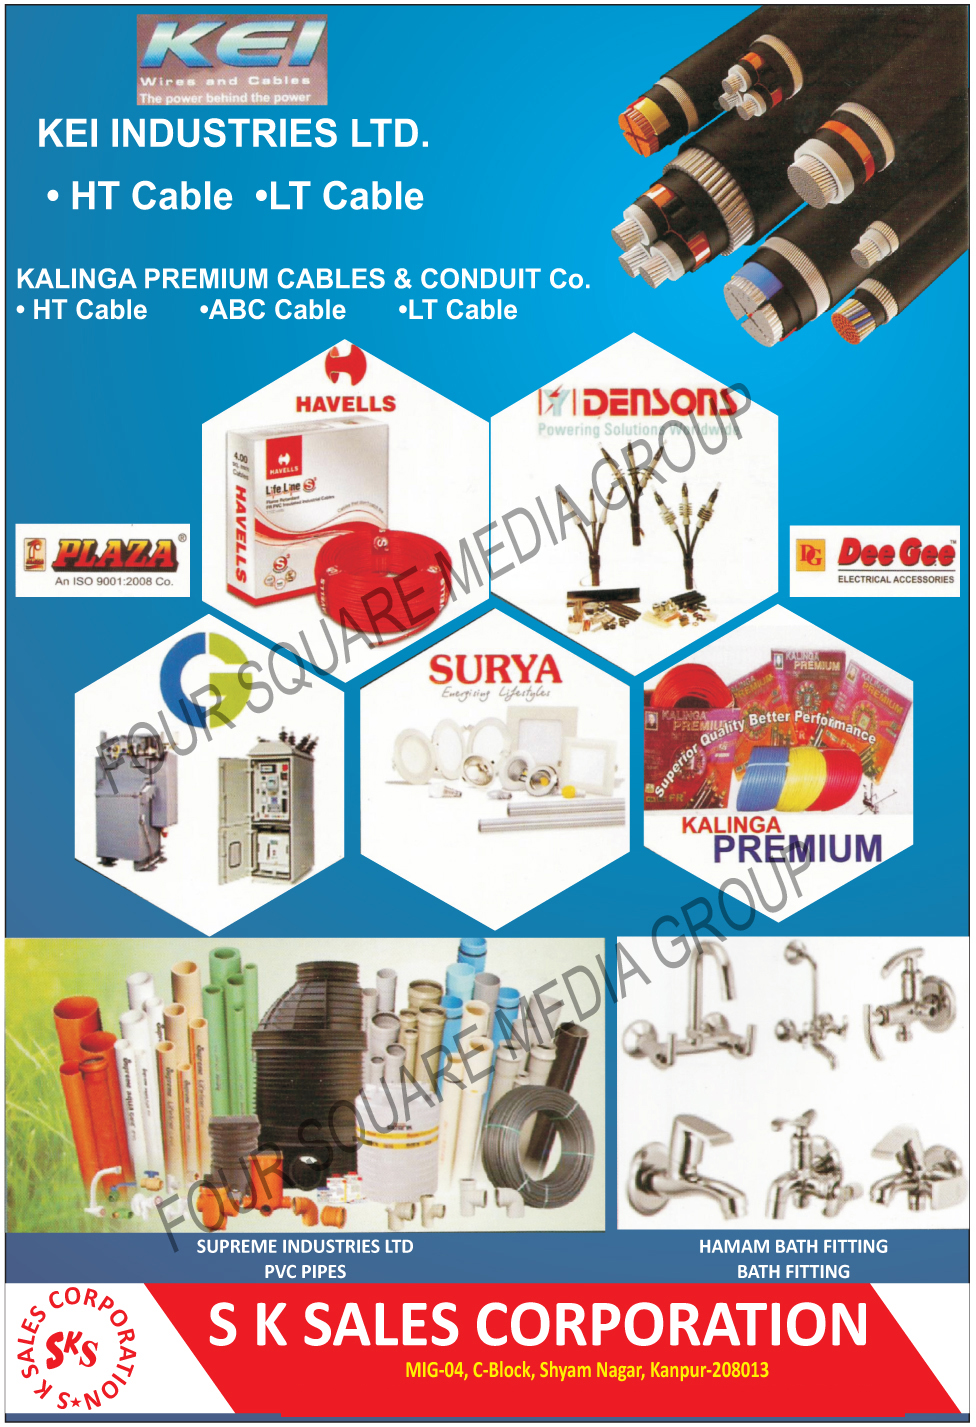 HT Cables, LT Cables, ABC Cables, PVC Pipes, Bath Fittings